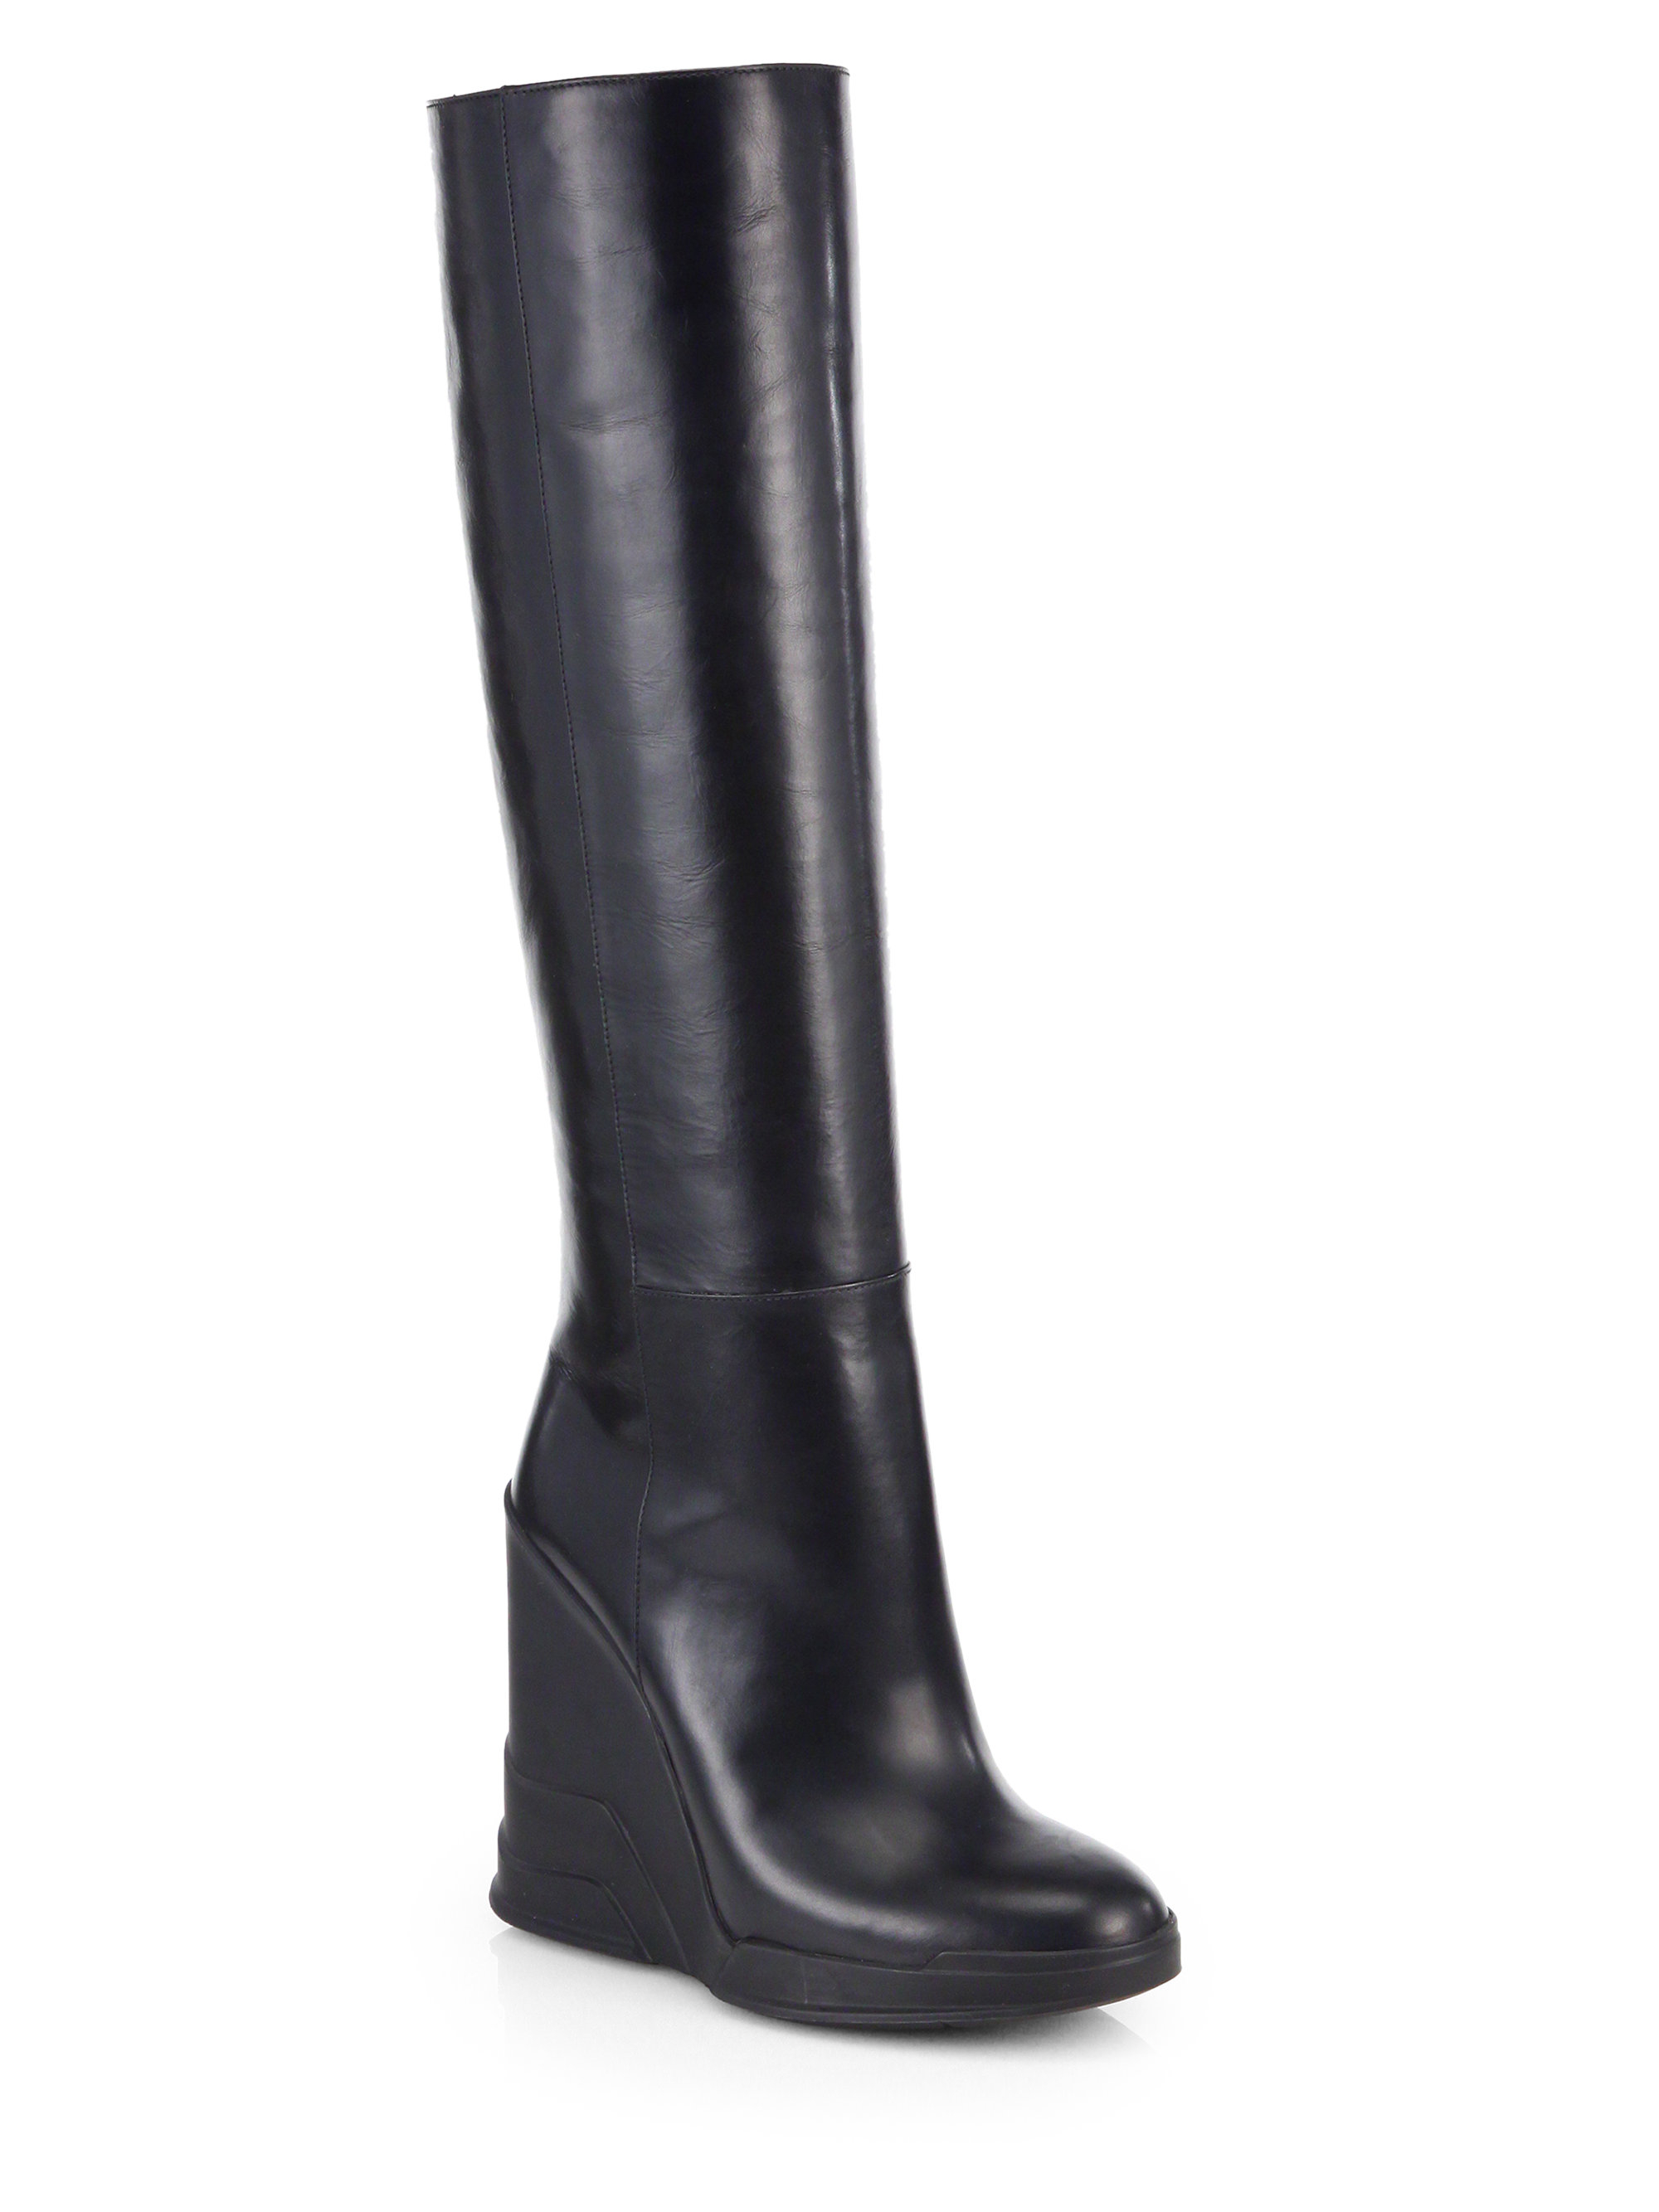 Prada Leather Knee High Wedge Boots In Black Lyst